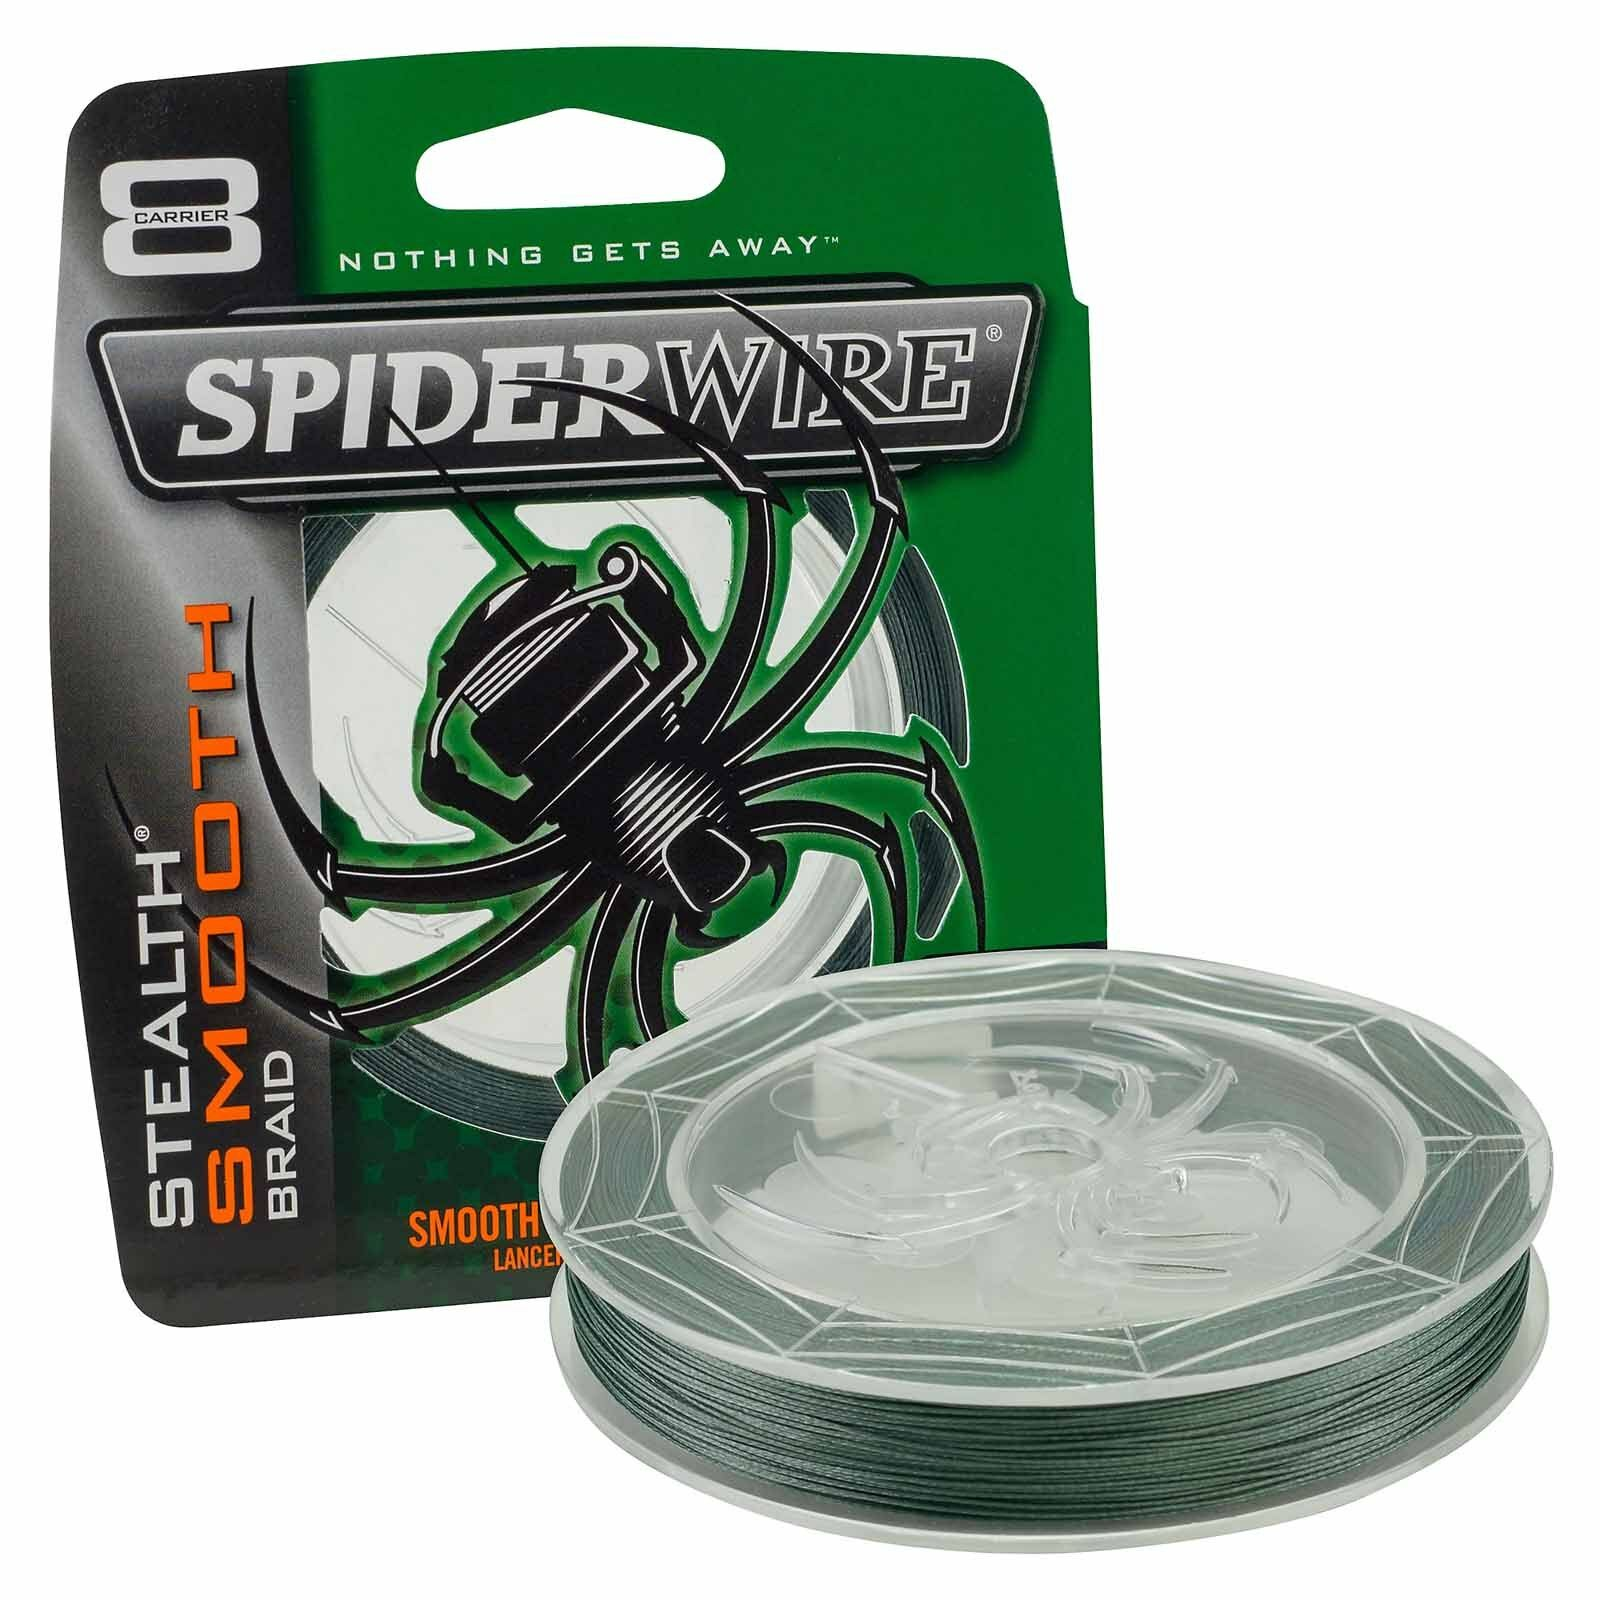 Spiderwire Superline Stealth Smooth 8 3000m Moss Green Braid Fishing  Line  brand outlet